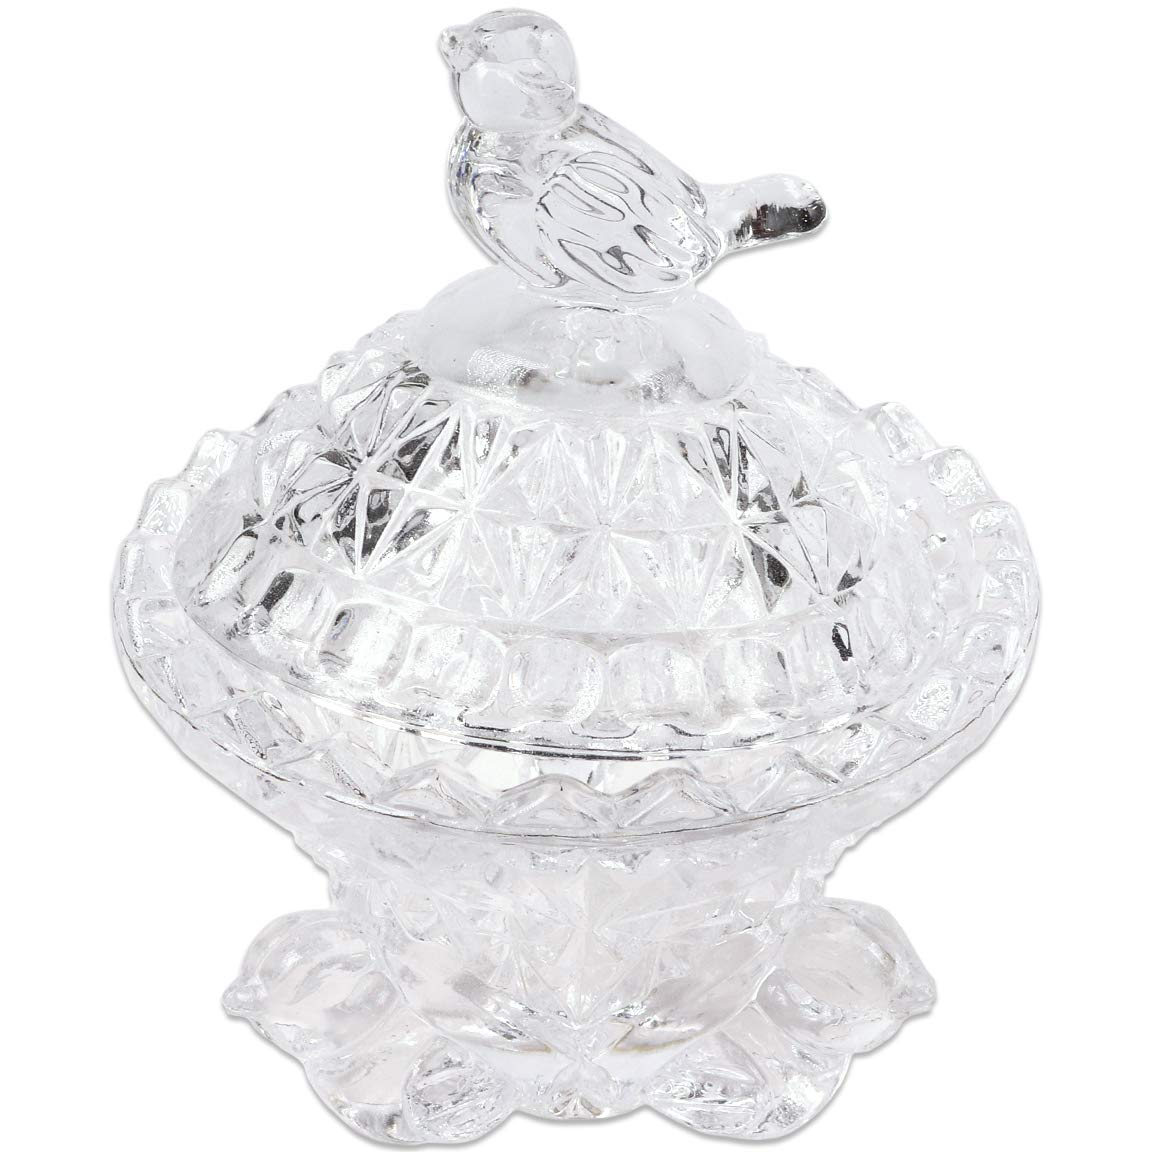 fcdbc7728e23 Fuji Premium Crystal Bird Shaped Glass Dappen Dish Holder with Lid Or Small  Accessories Jewelry Holder....